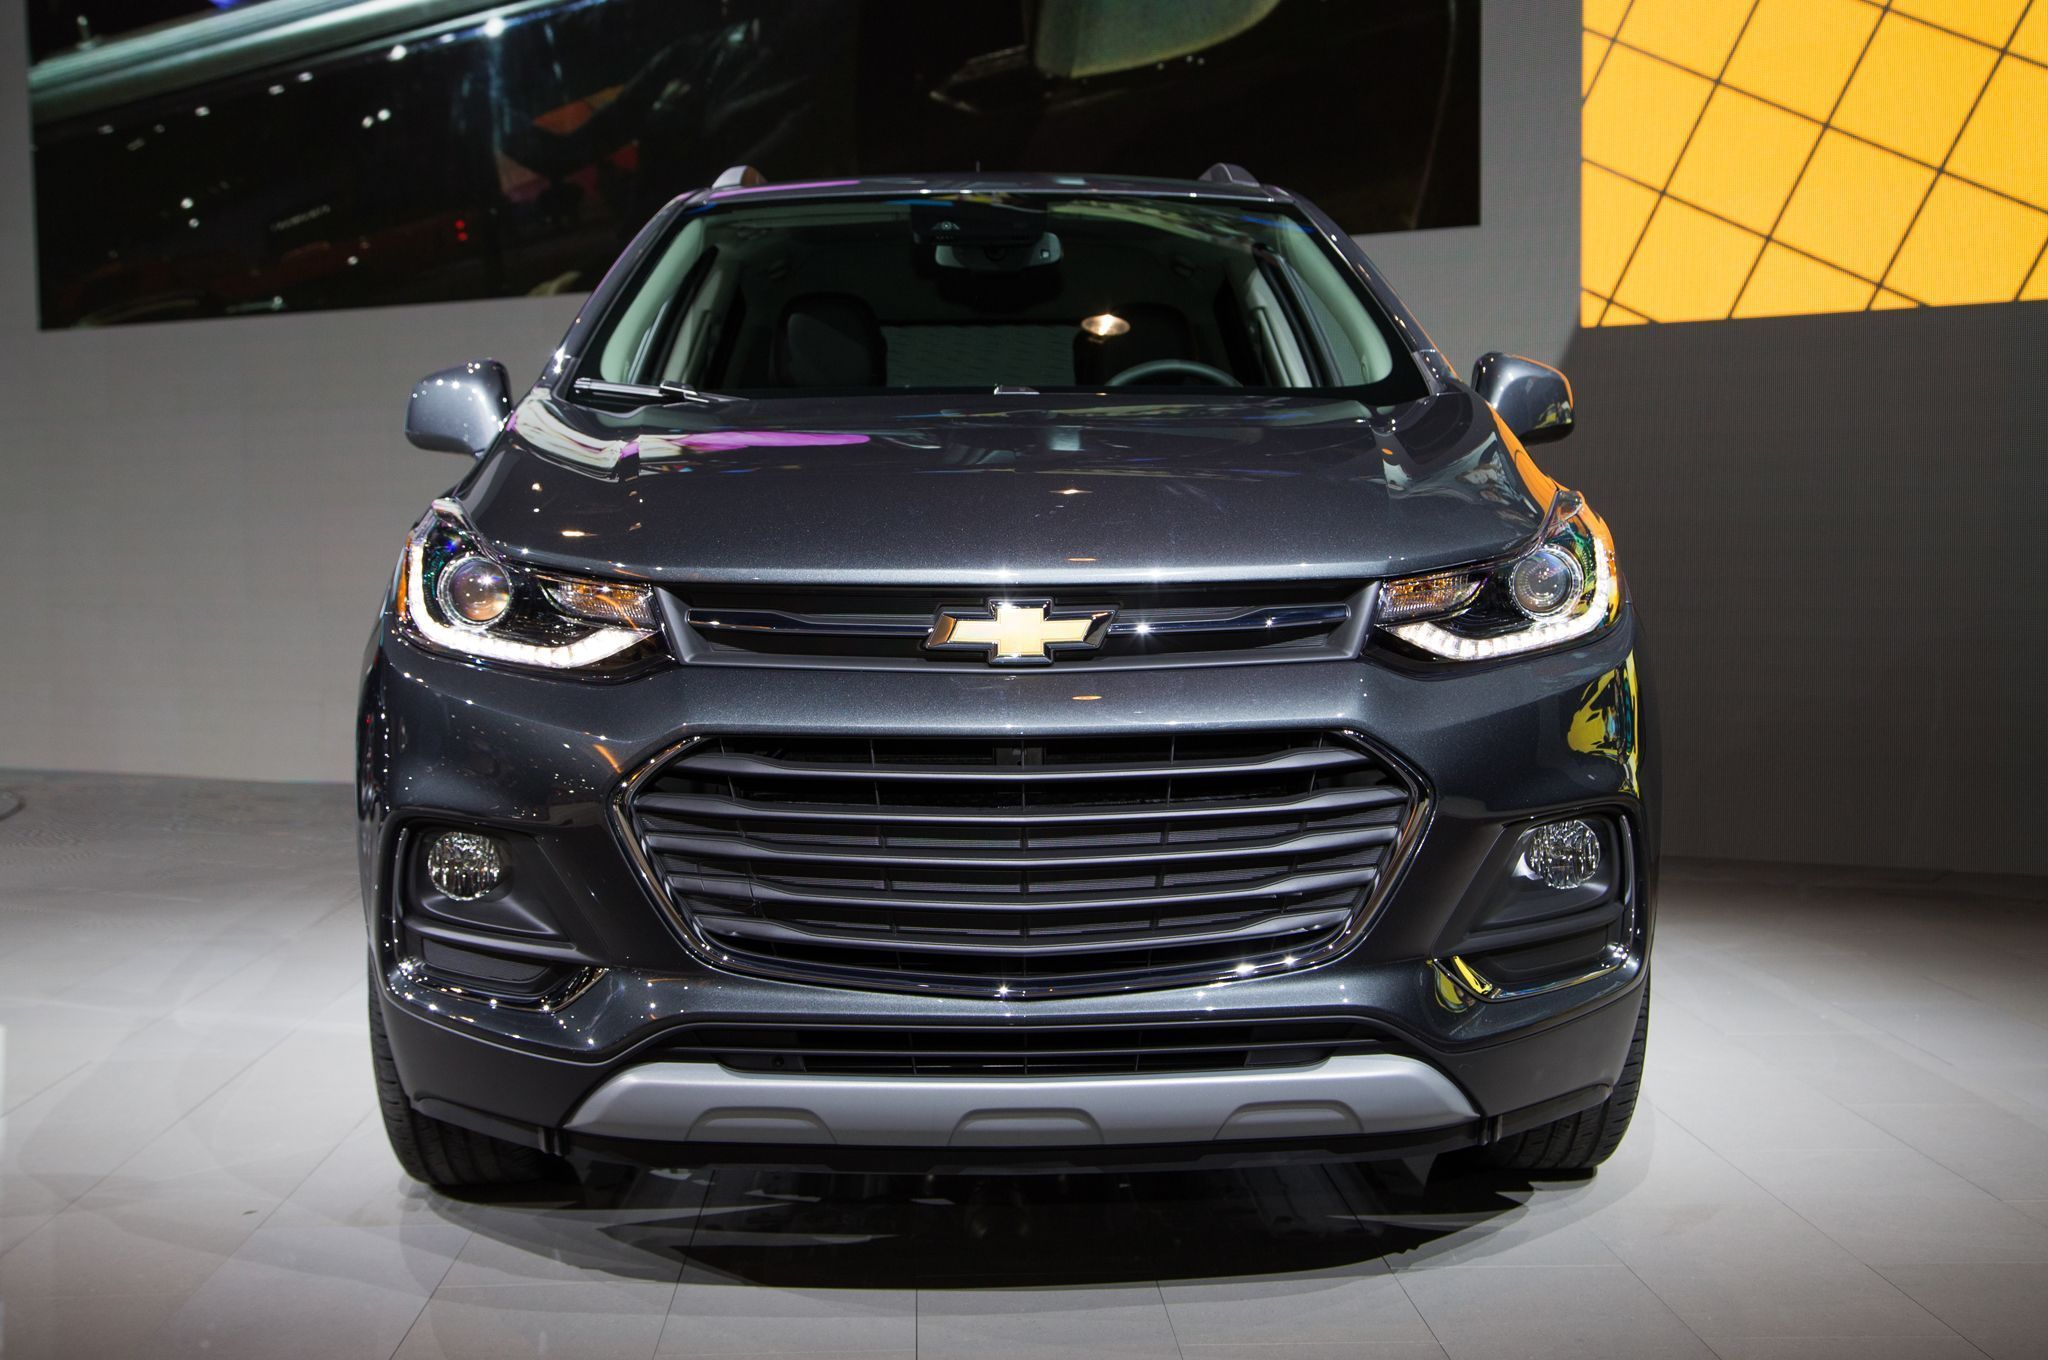 2018 Chevrolet Trax Specs And Price - http://www.uscarsnews.com/2018 ...